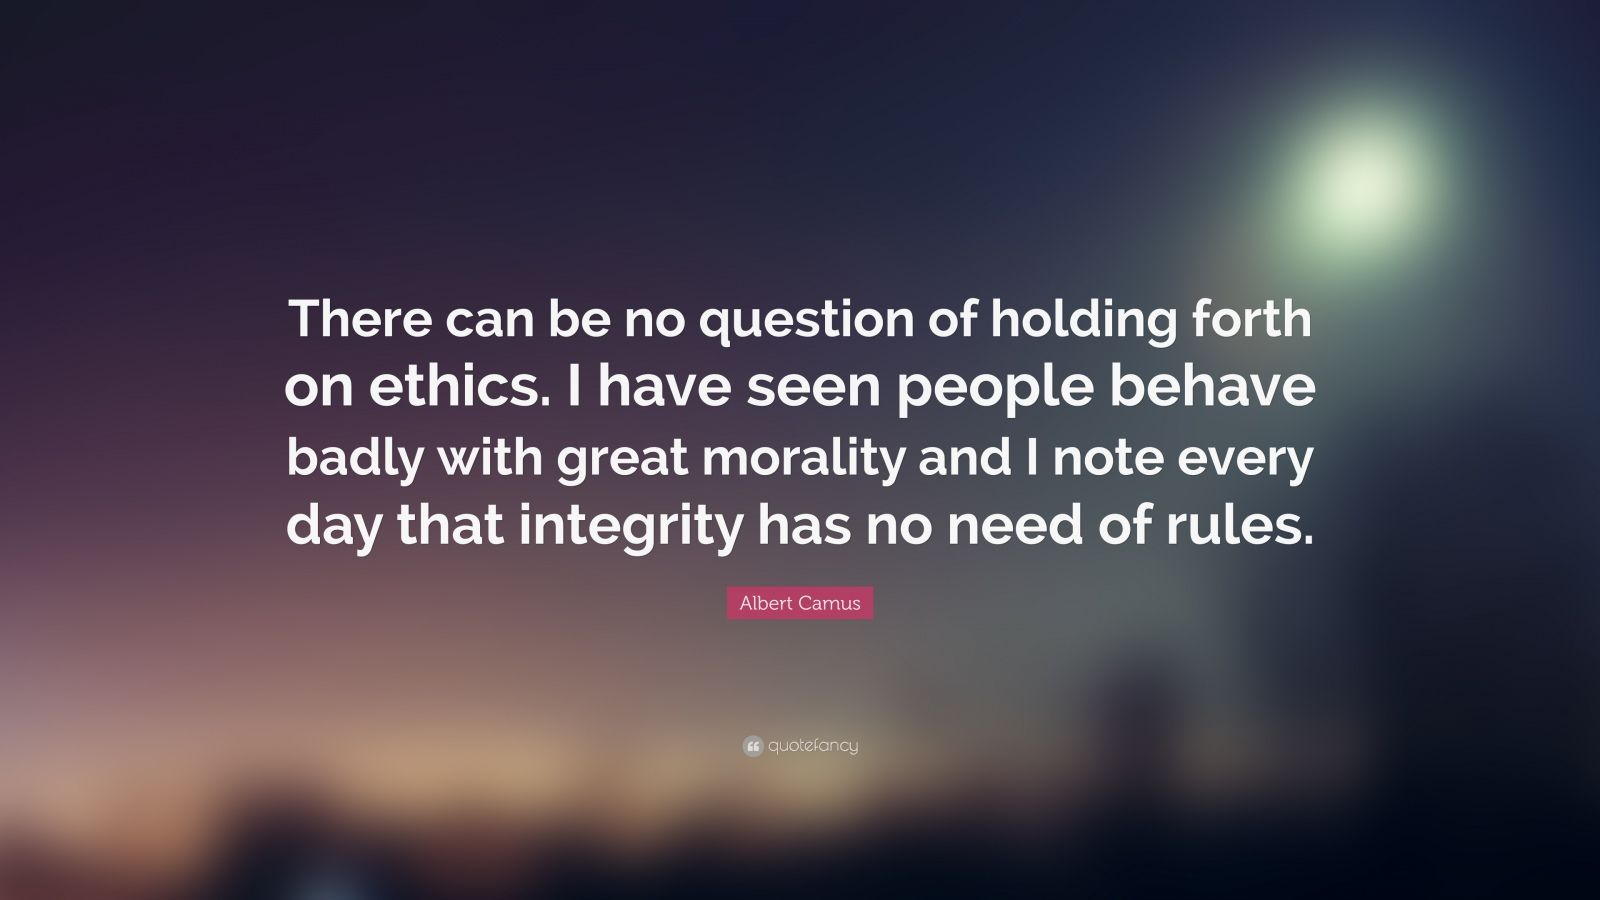 """Albert Camus Quote: """"There can be no question of holding forth on ethics. I have seen people behave badly with great morality and I note every day that integrity has no need of rules."""""""